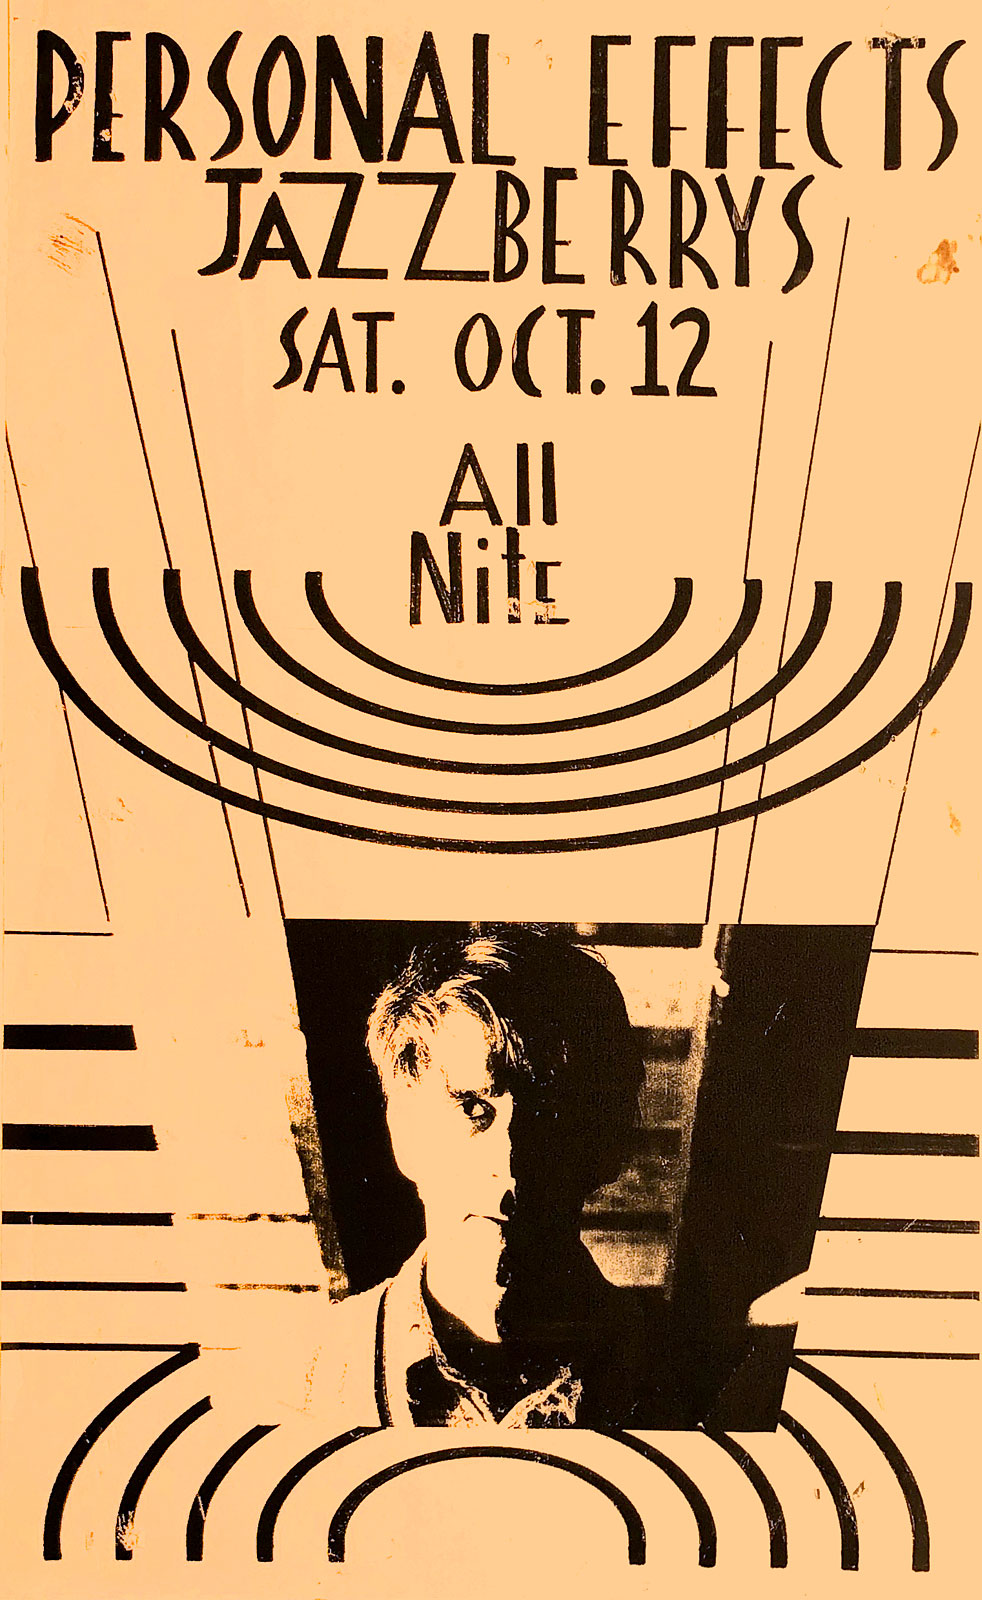 Poster for Personal Effects at Jazzberry's in Rochester, New York on 10.12.1985. Peggi Fournier designed this poster.